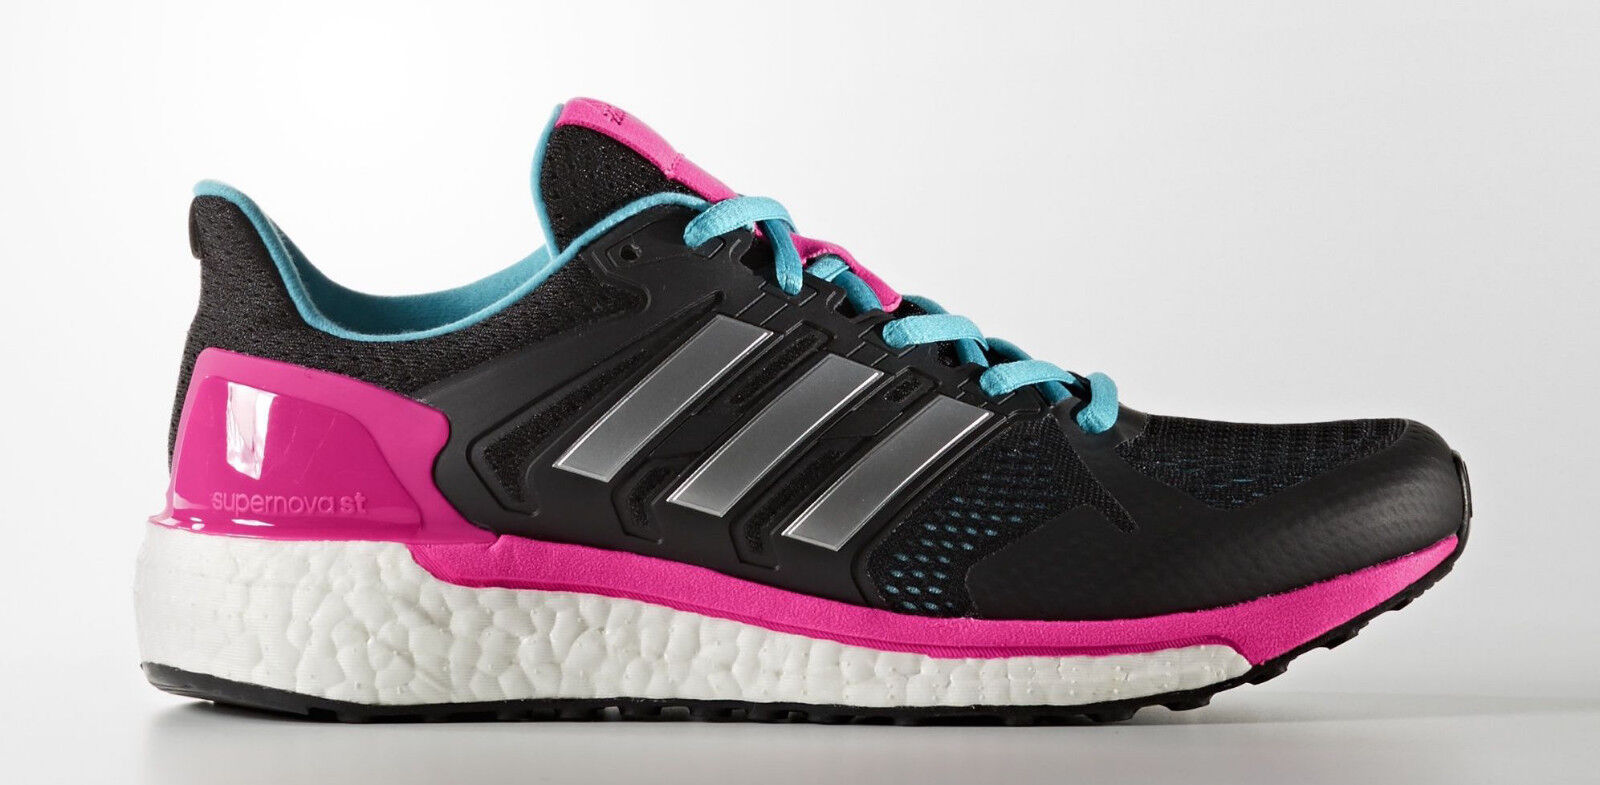 07877a425 ADIDAS SUPERNOVA ST BOOST STRUCTURED WOMENS RUNNING GYM SHOES LADIES  TRAINERS ozidbr9775-Women